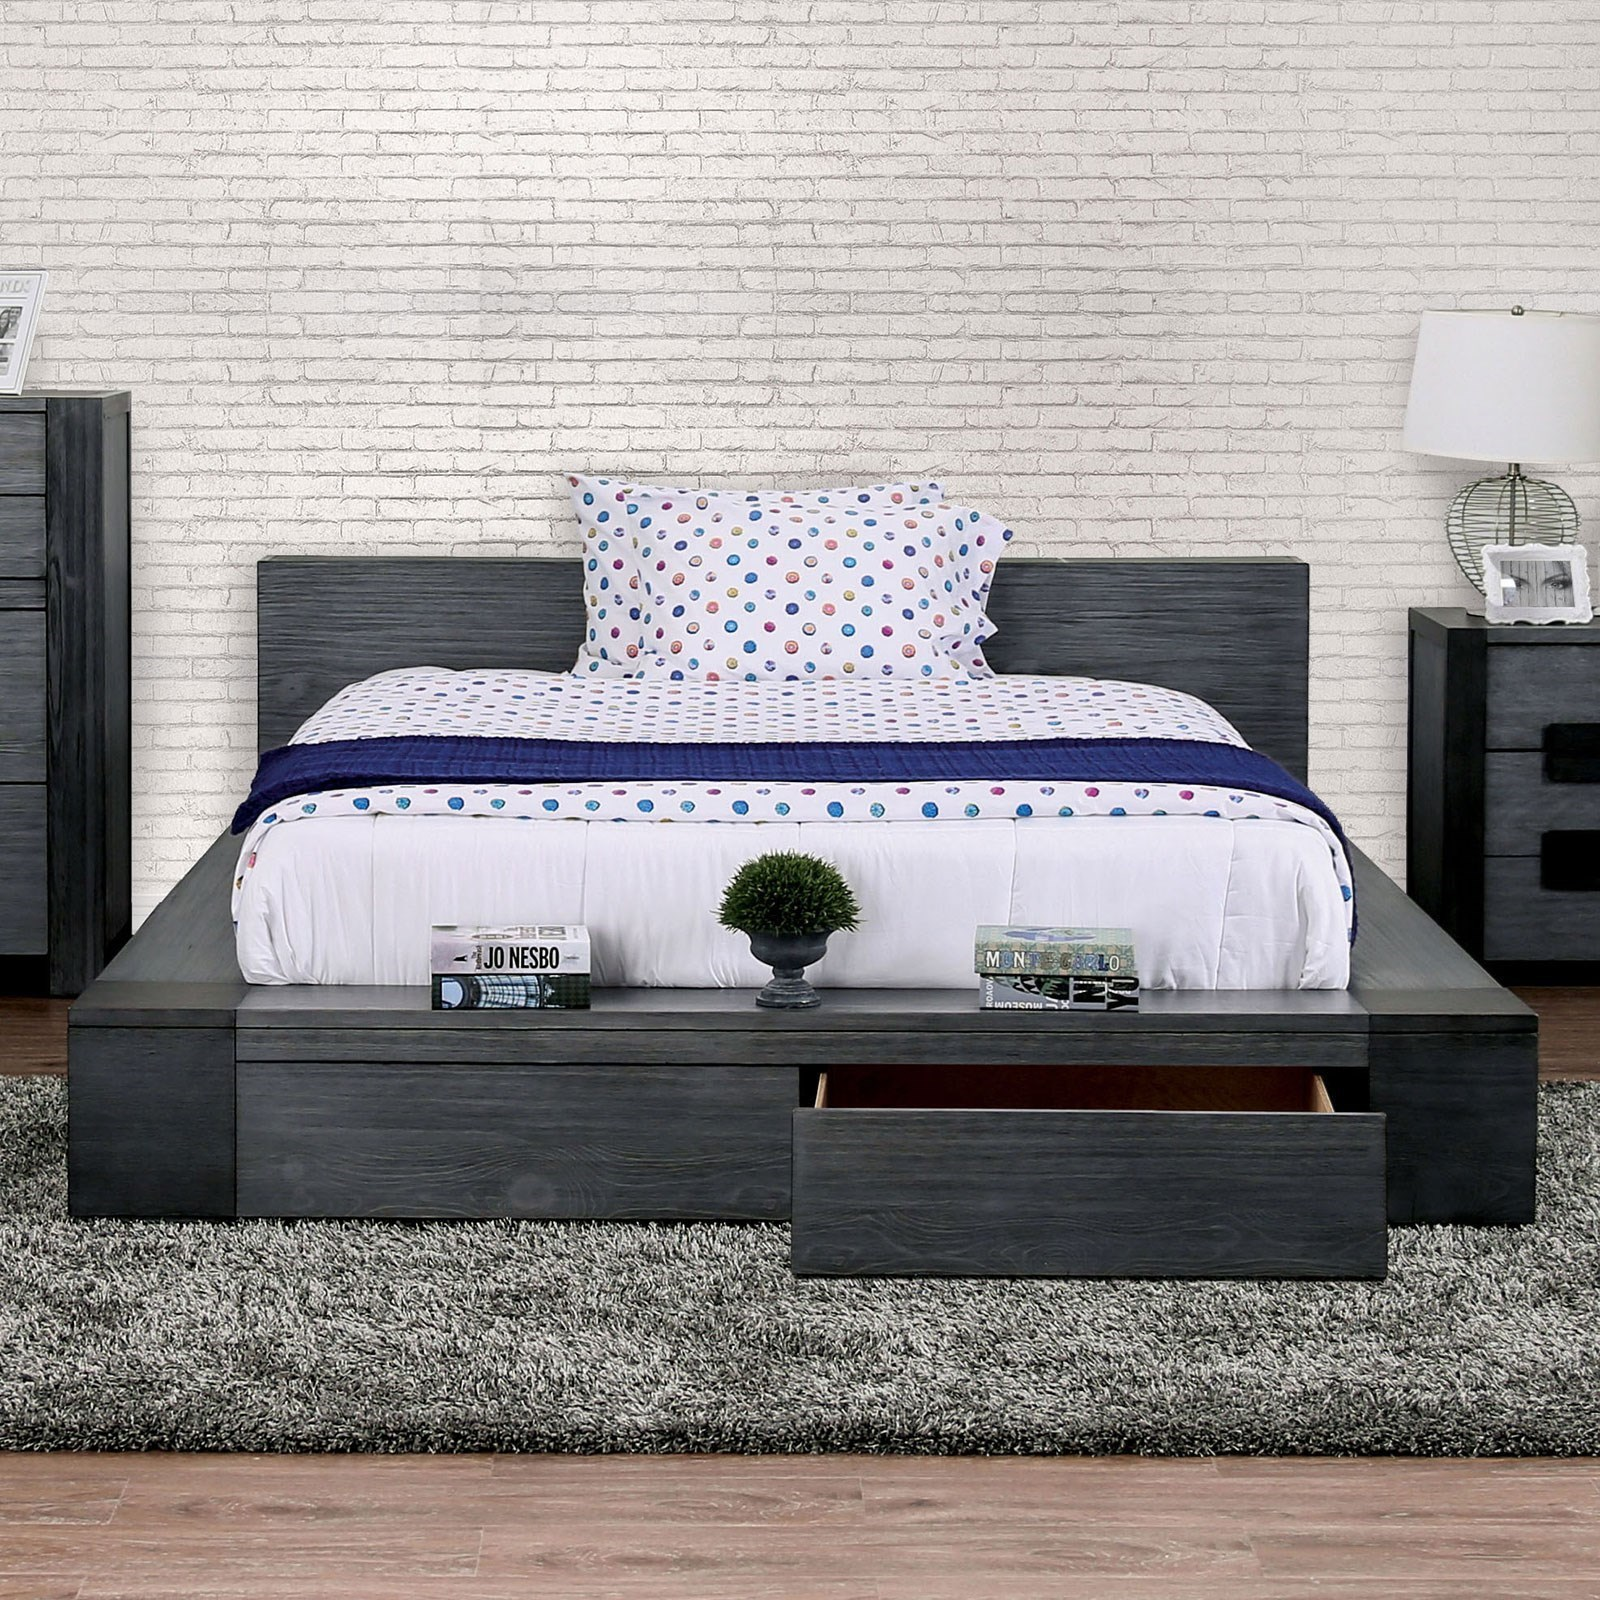 Furniture Of America Foa Janeiro Cm7629gy Ek Bed Rustic King Platform Bed With Storage Del Sol Furniture Platform Beds Low Profile Beds